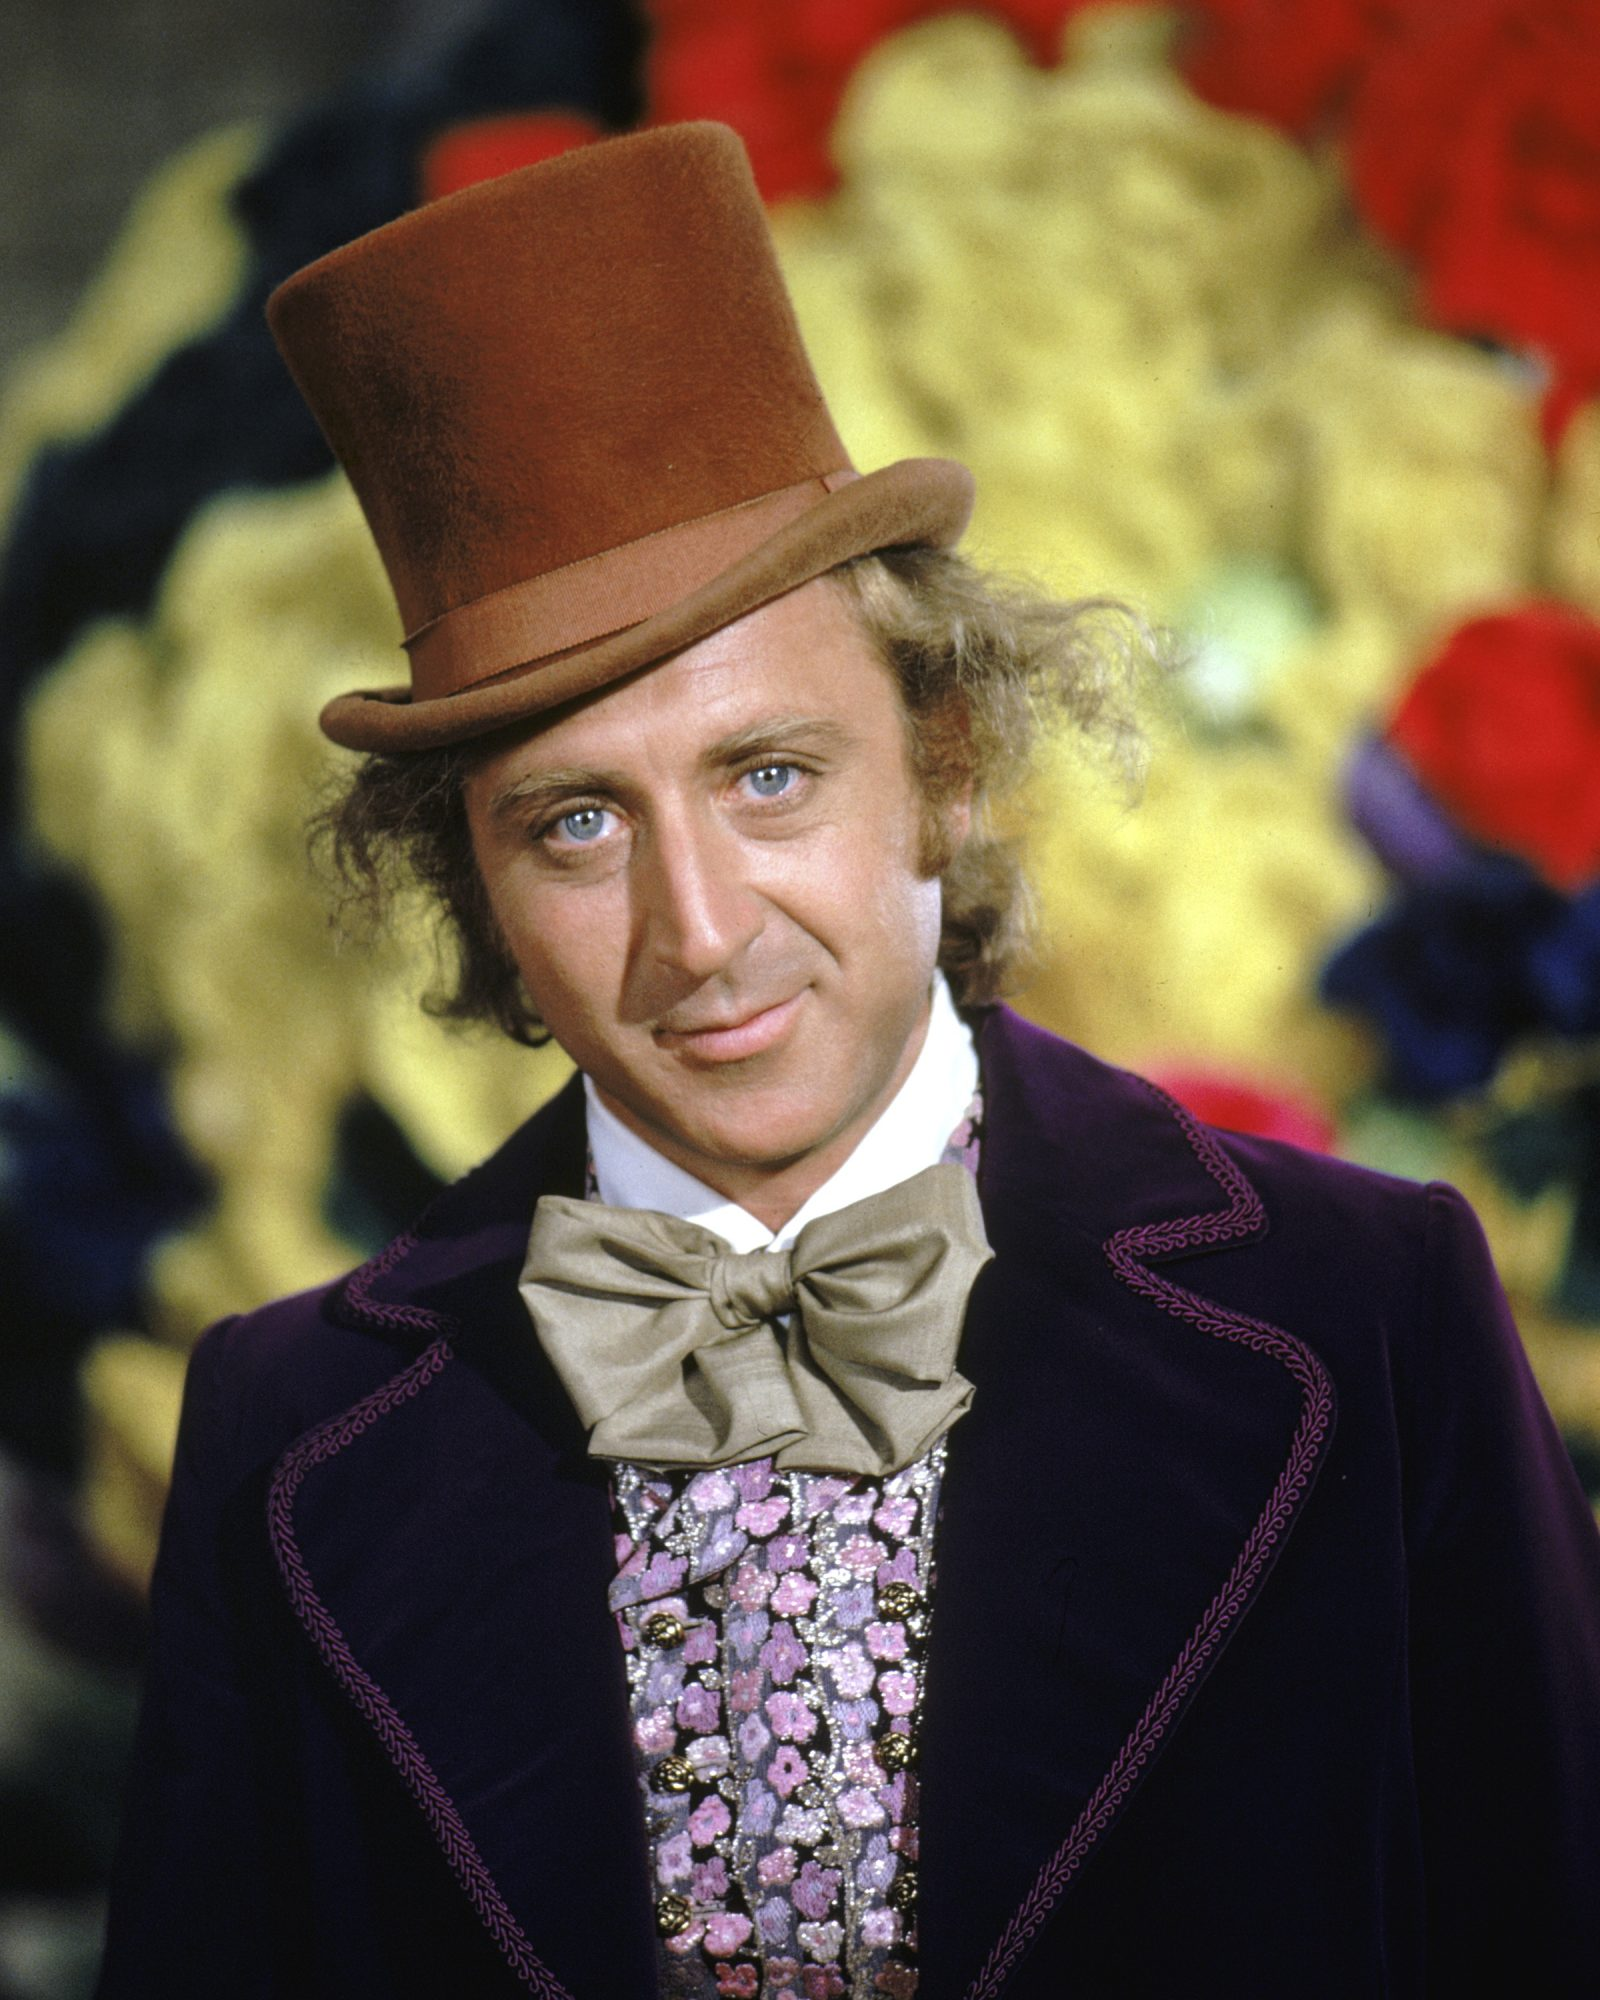 11 Candy Recipes to Honor Gene Wilder, a.k.a. Willy Wonka